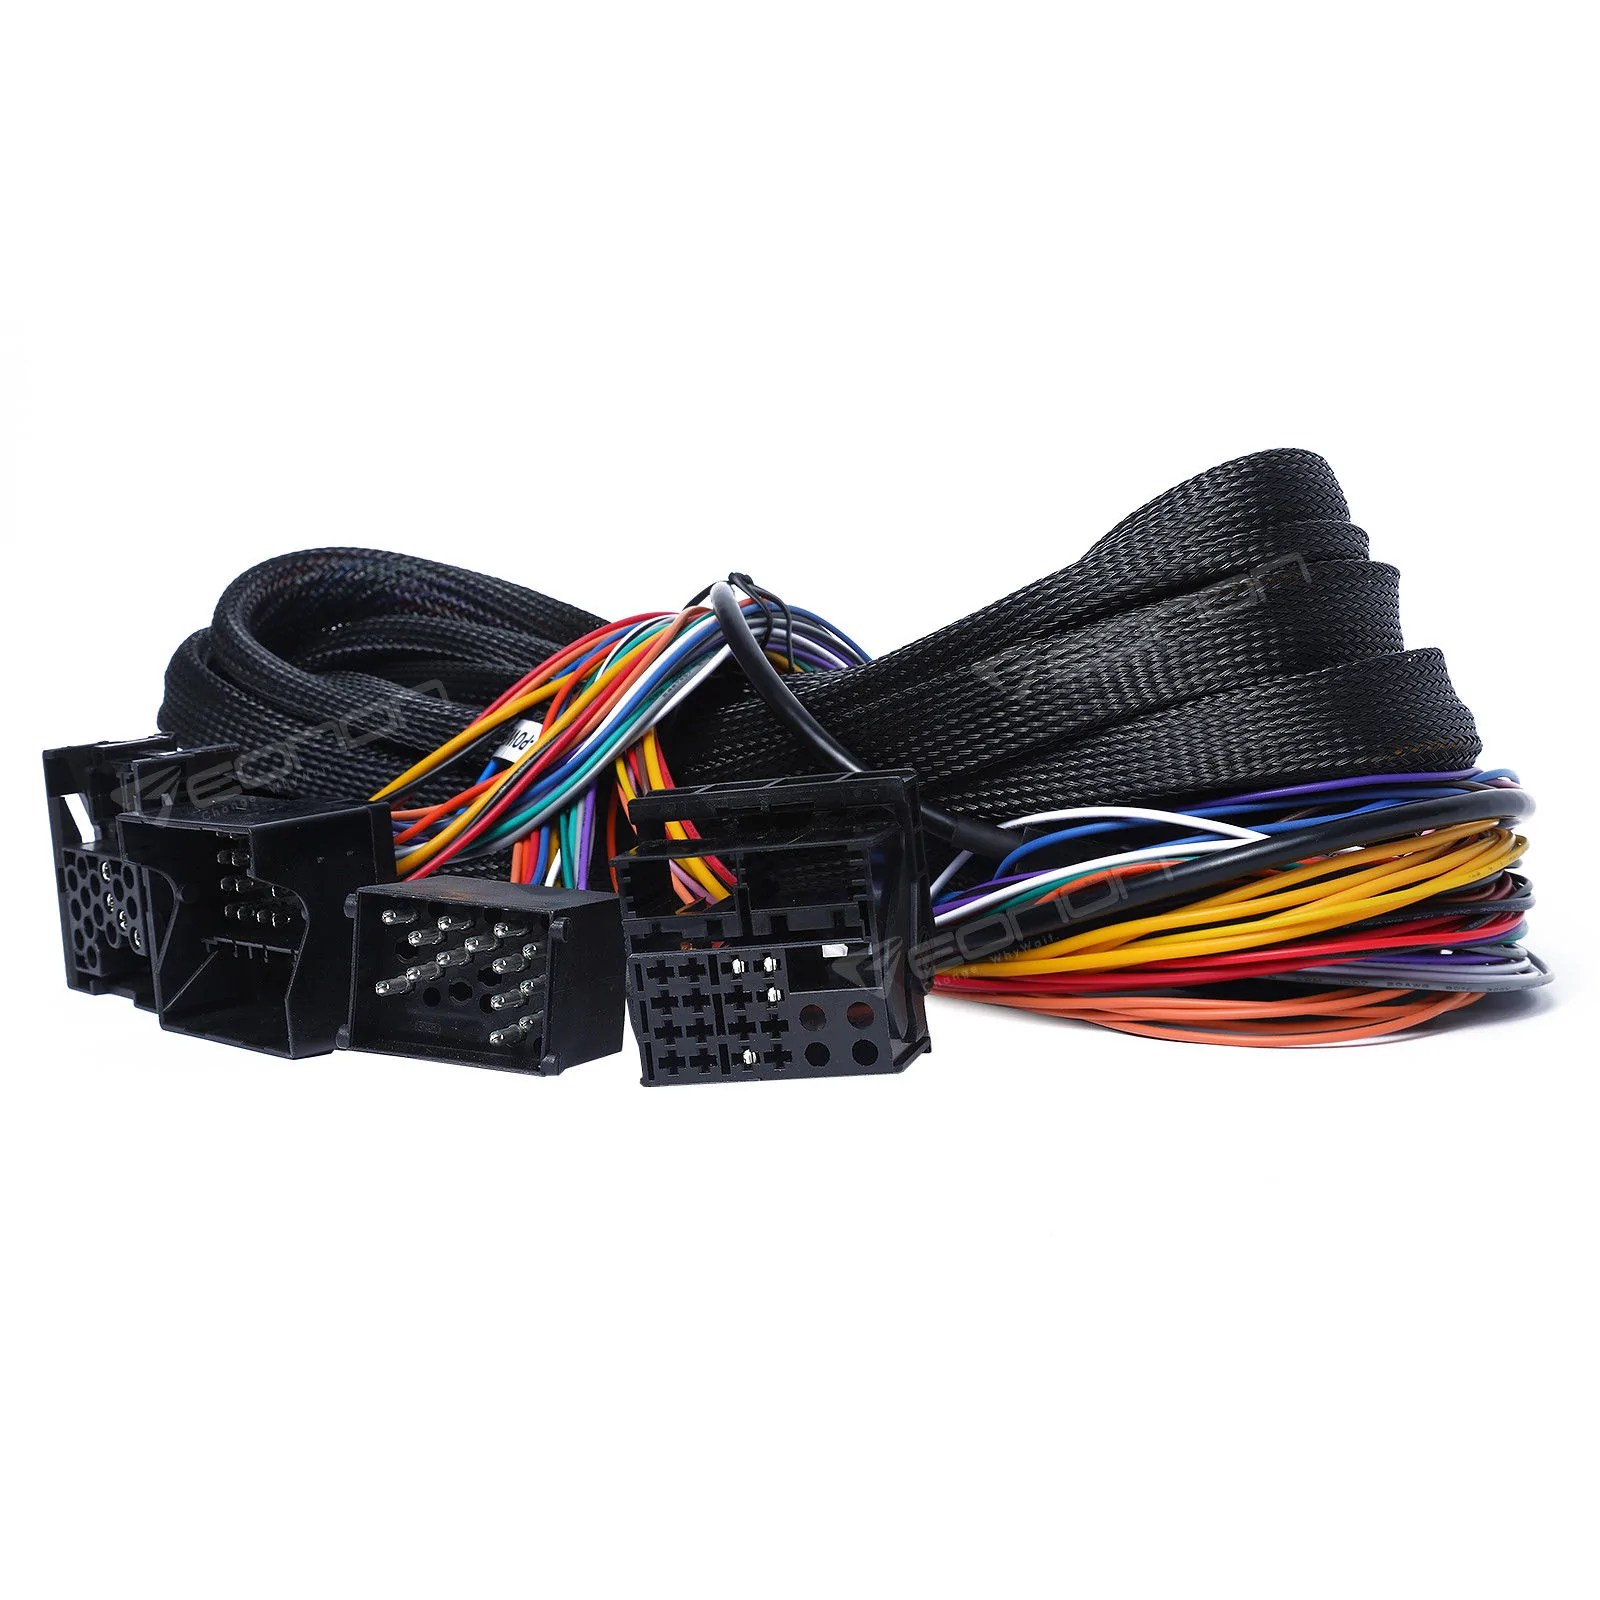 medium resolution of a0582 bmw e46 e39 e53 extended wiring harness 17pin 40pin for 2002 bmw x5 key wiring harness